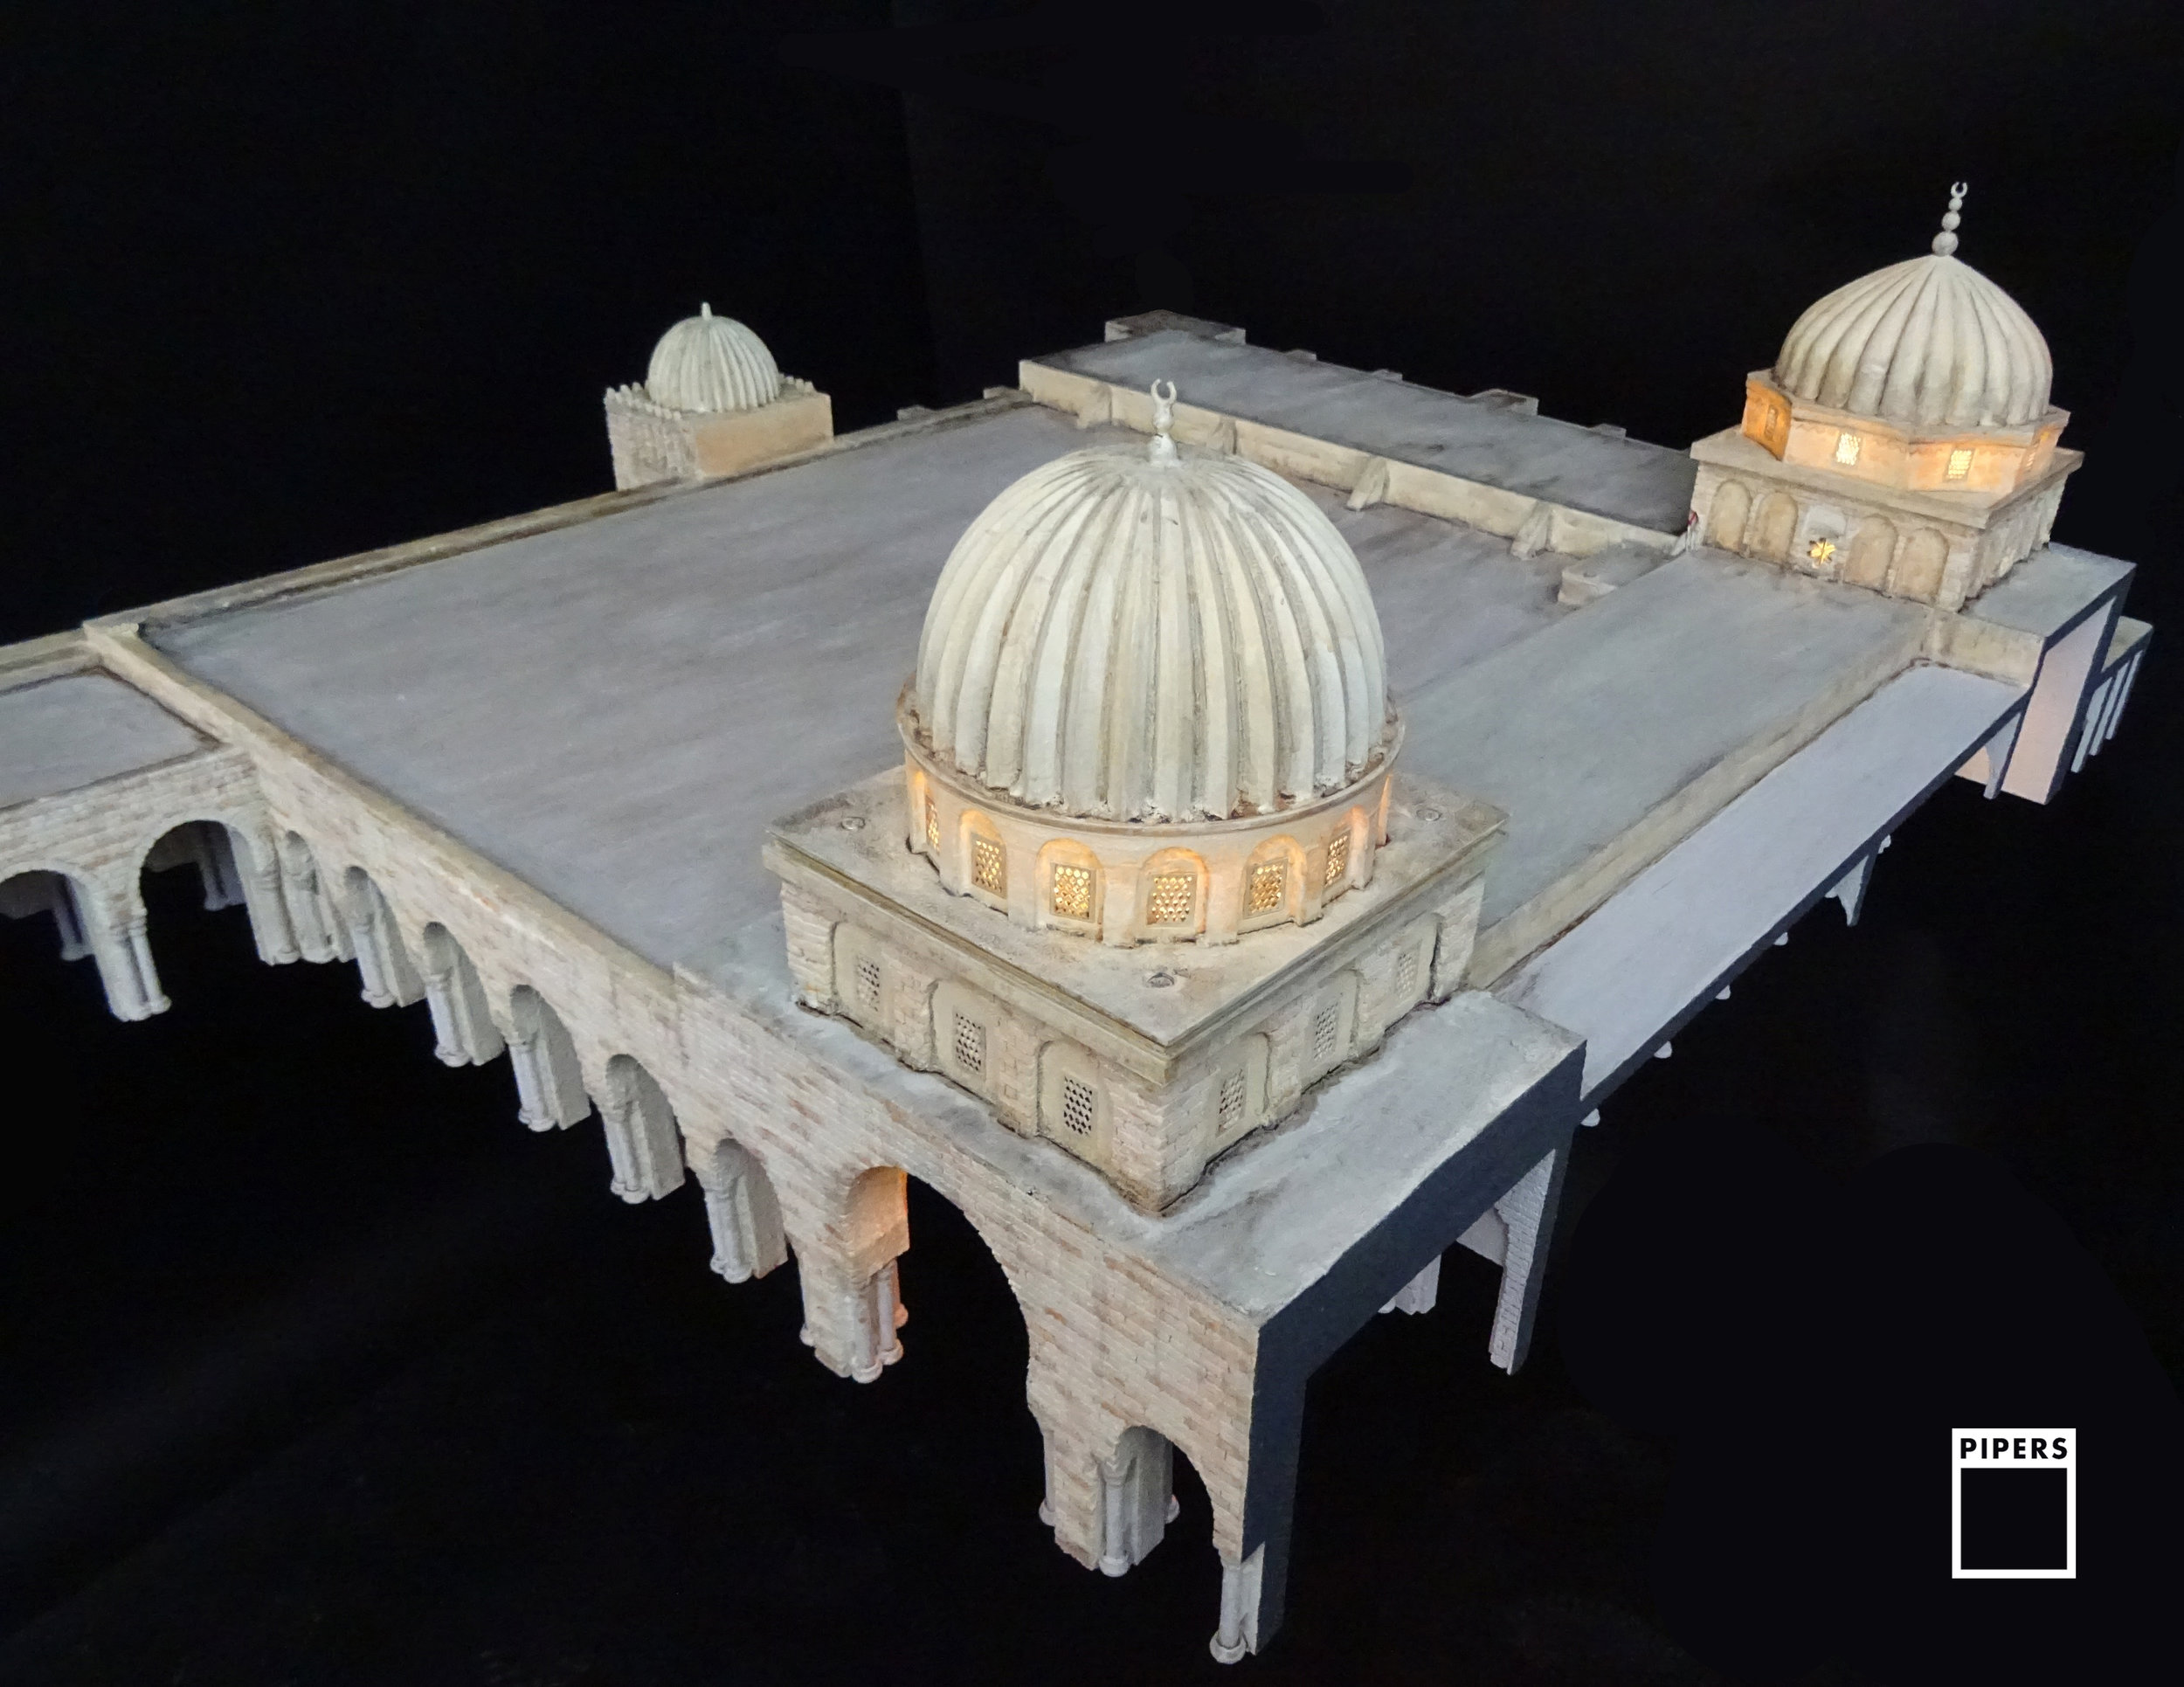 GREAT MOSQUE OF KAIROUAN, TUNISIA. 1:50 SCALE SECTION MODEL